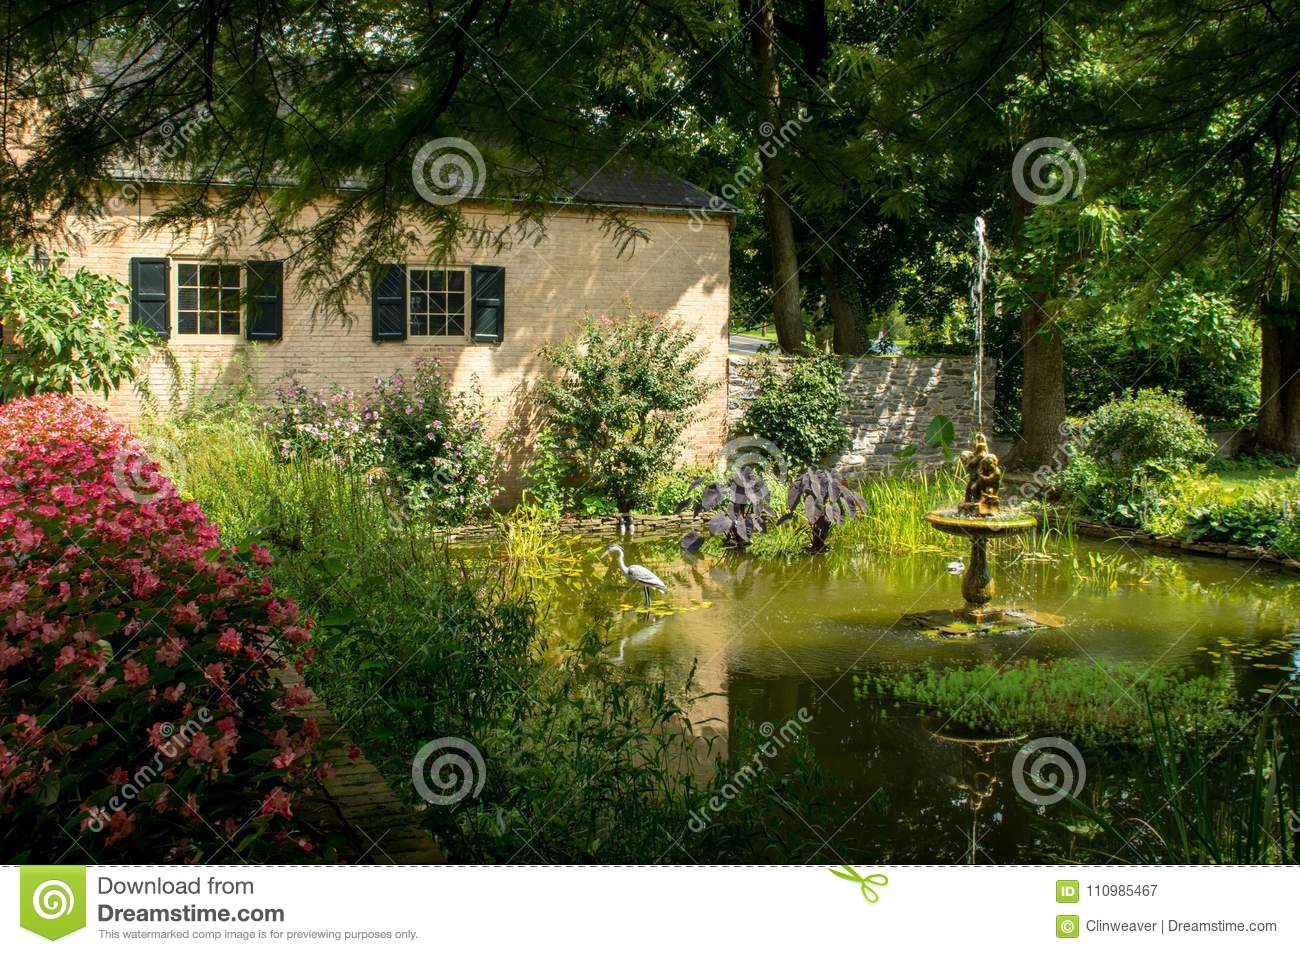 Download Small Garden Water Fountain Stock Image   Image Of Heron,  Architecture: 110985467